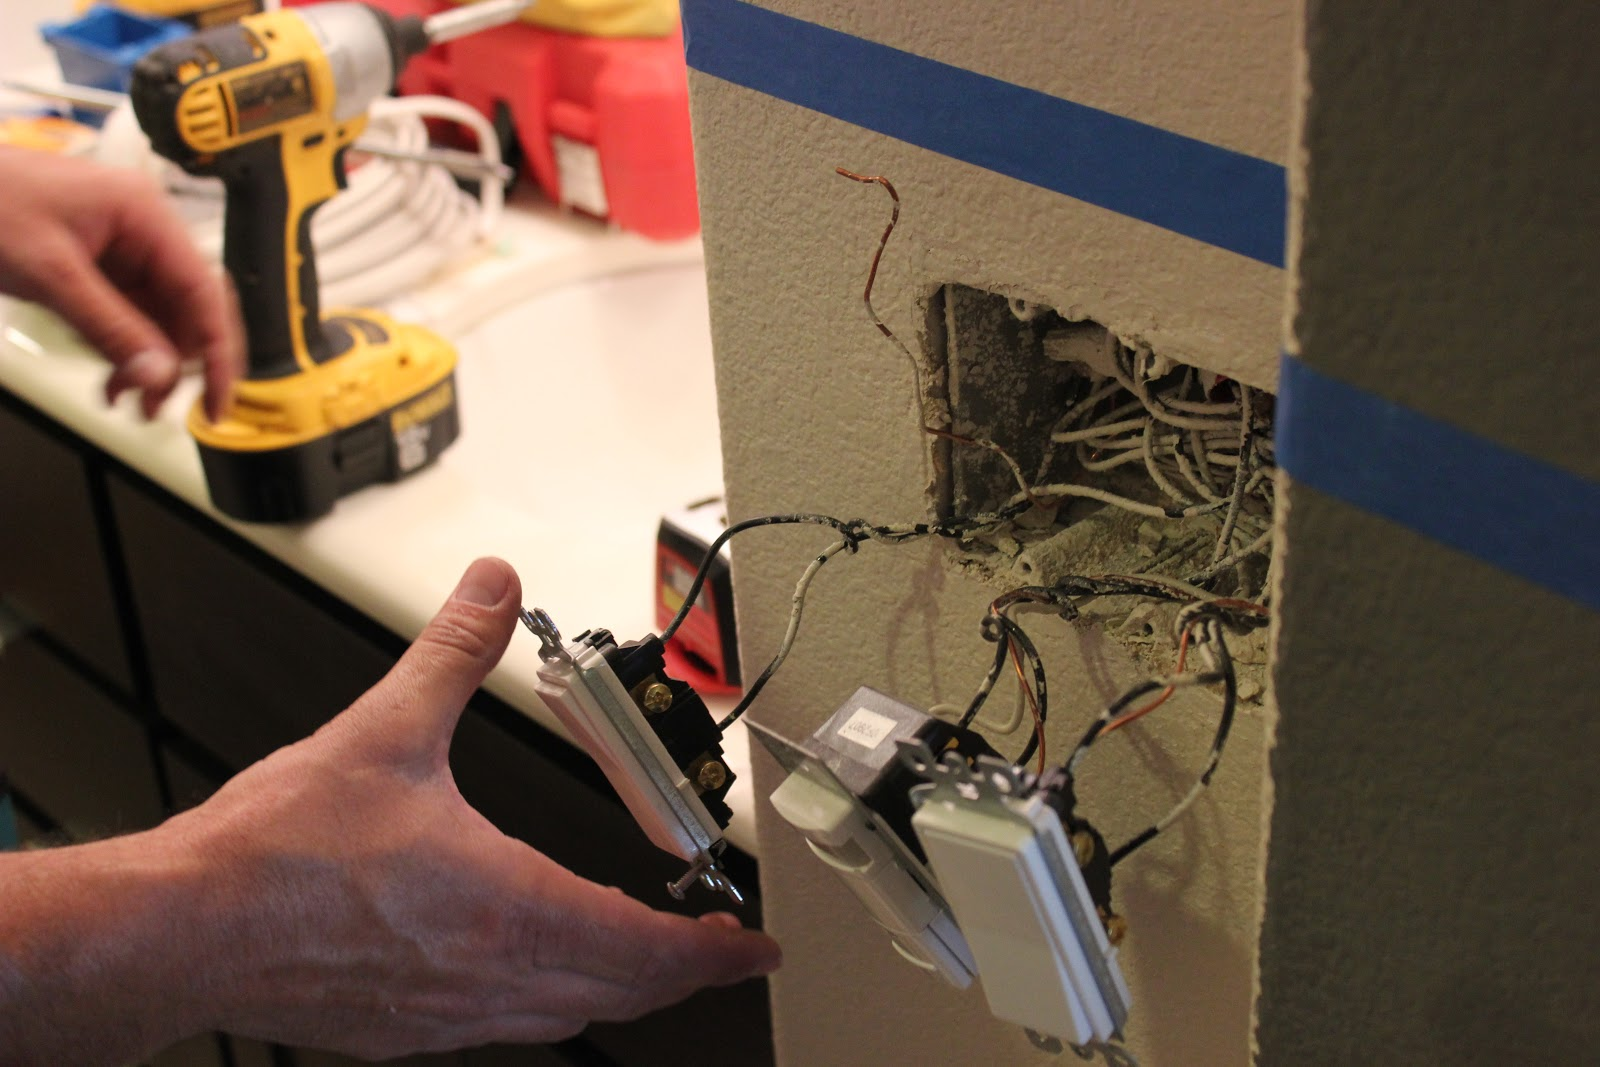 Bathroom Light Goes Off And On inside the frame: the master bathroom project | wiring new